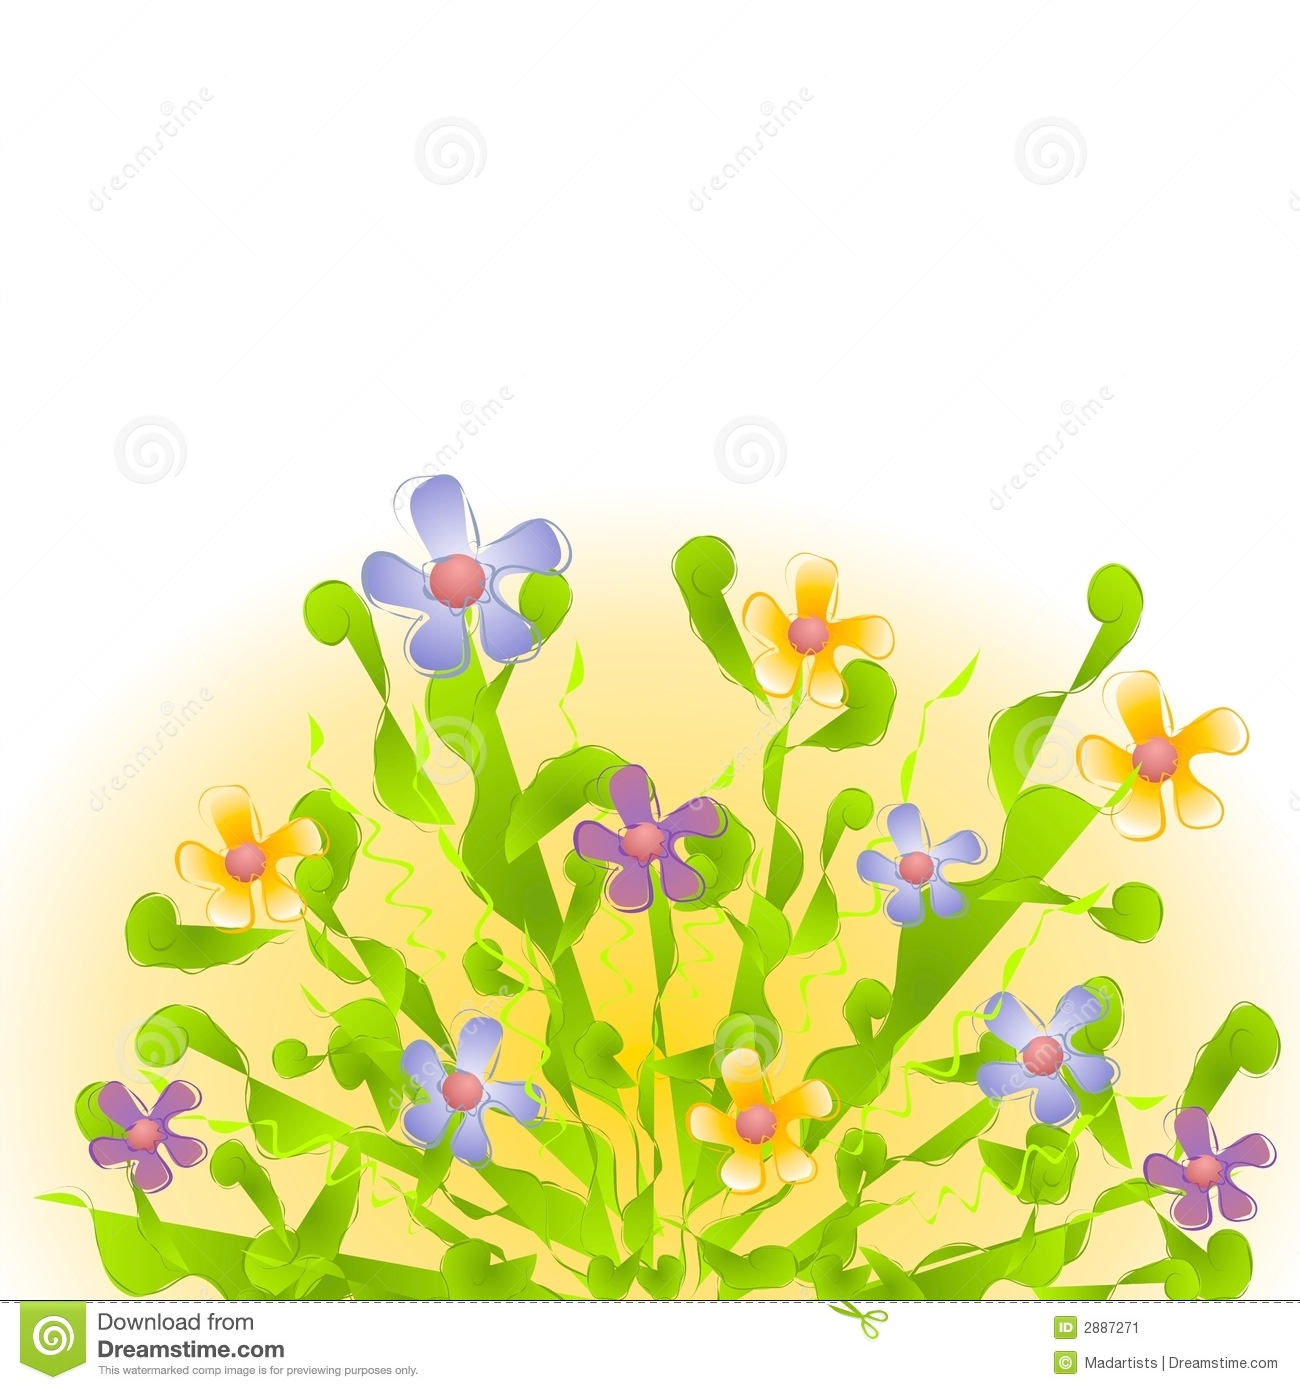 clipart garden images - photo #20